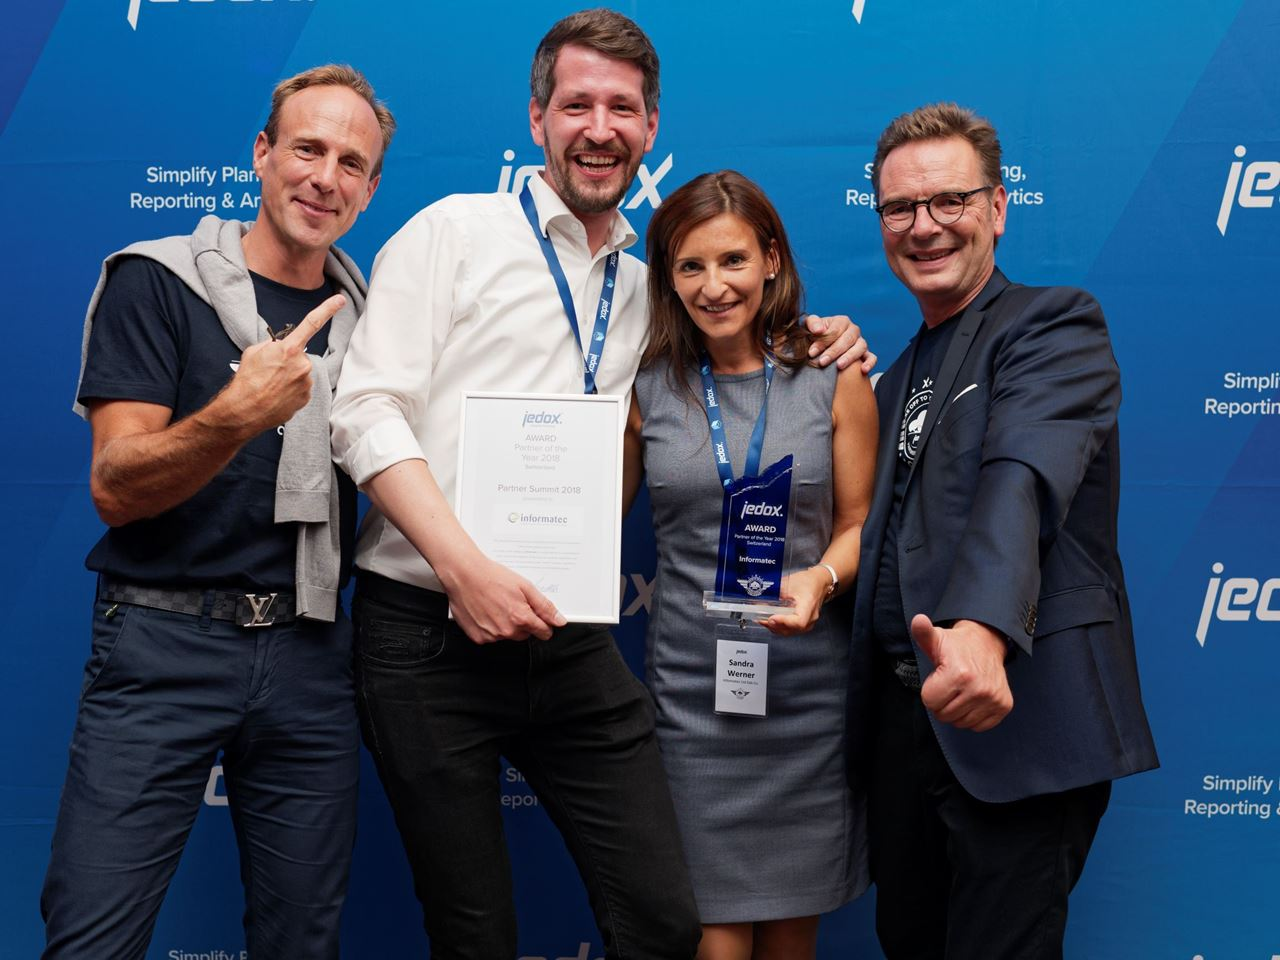 Informatec ist Jedox «Partner of the Year 2018 Switzerland»